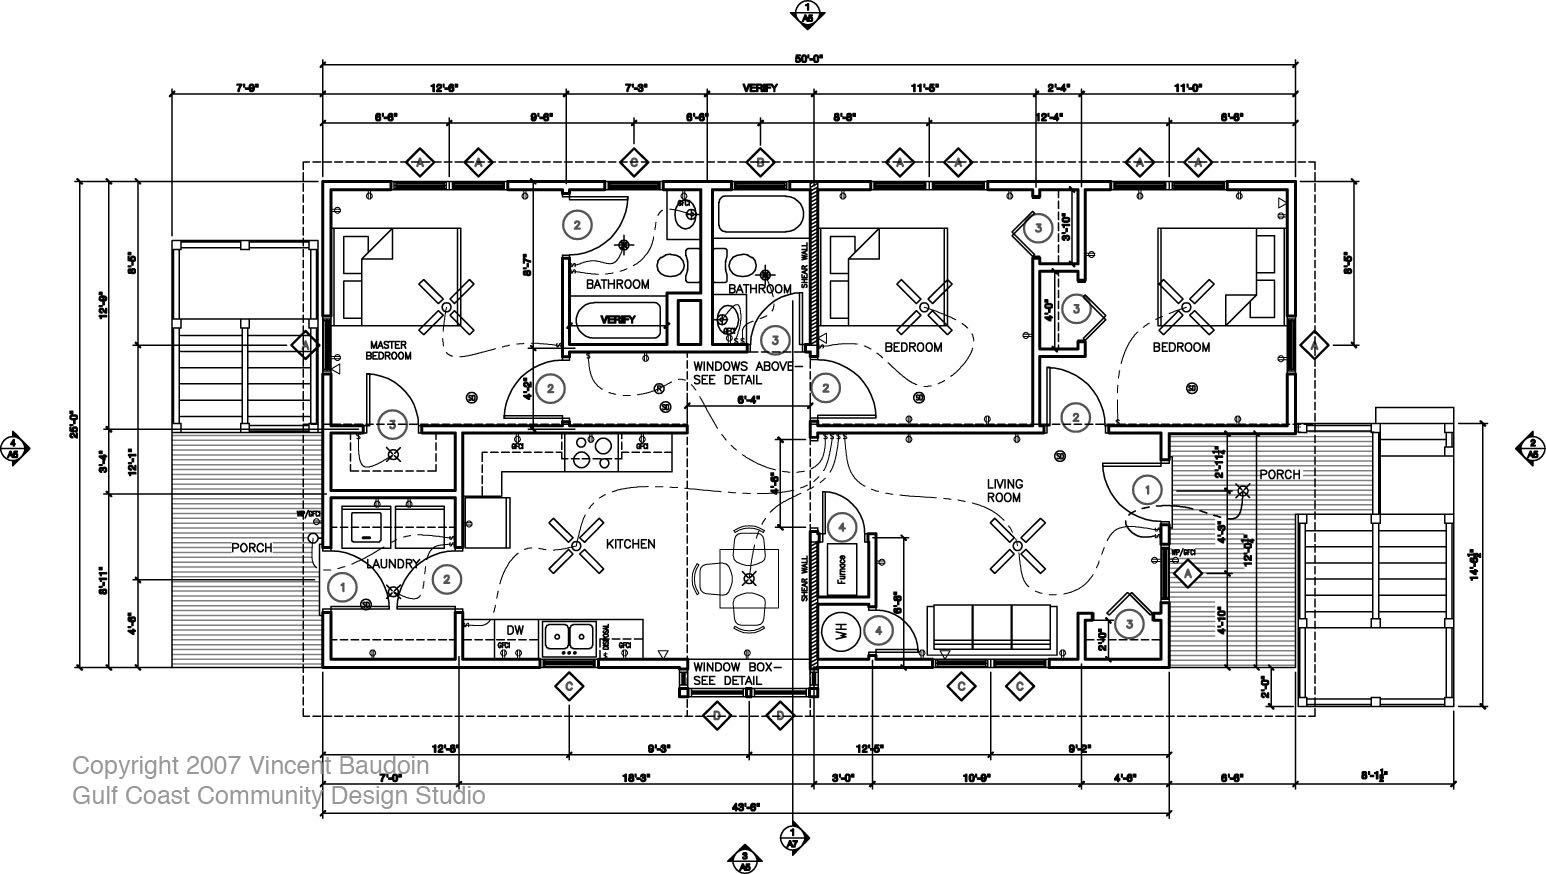 Residential house plans floor plans for Residential house plans